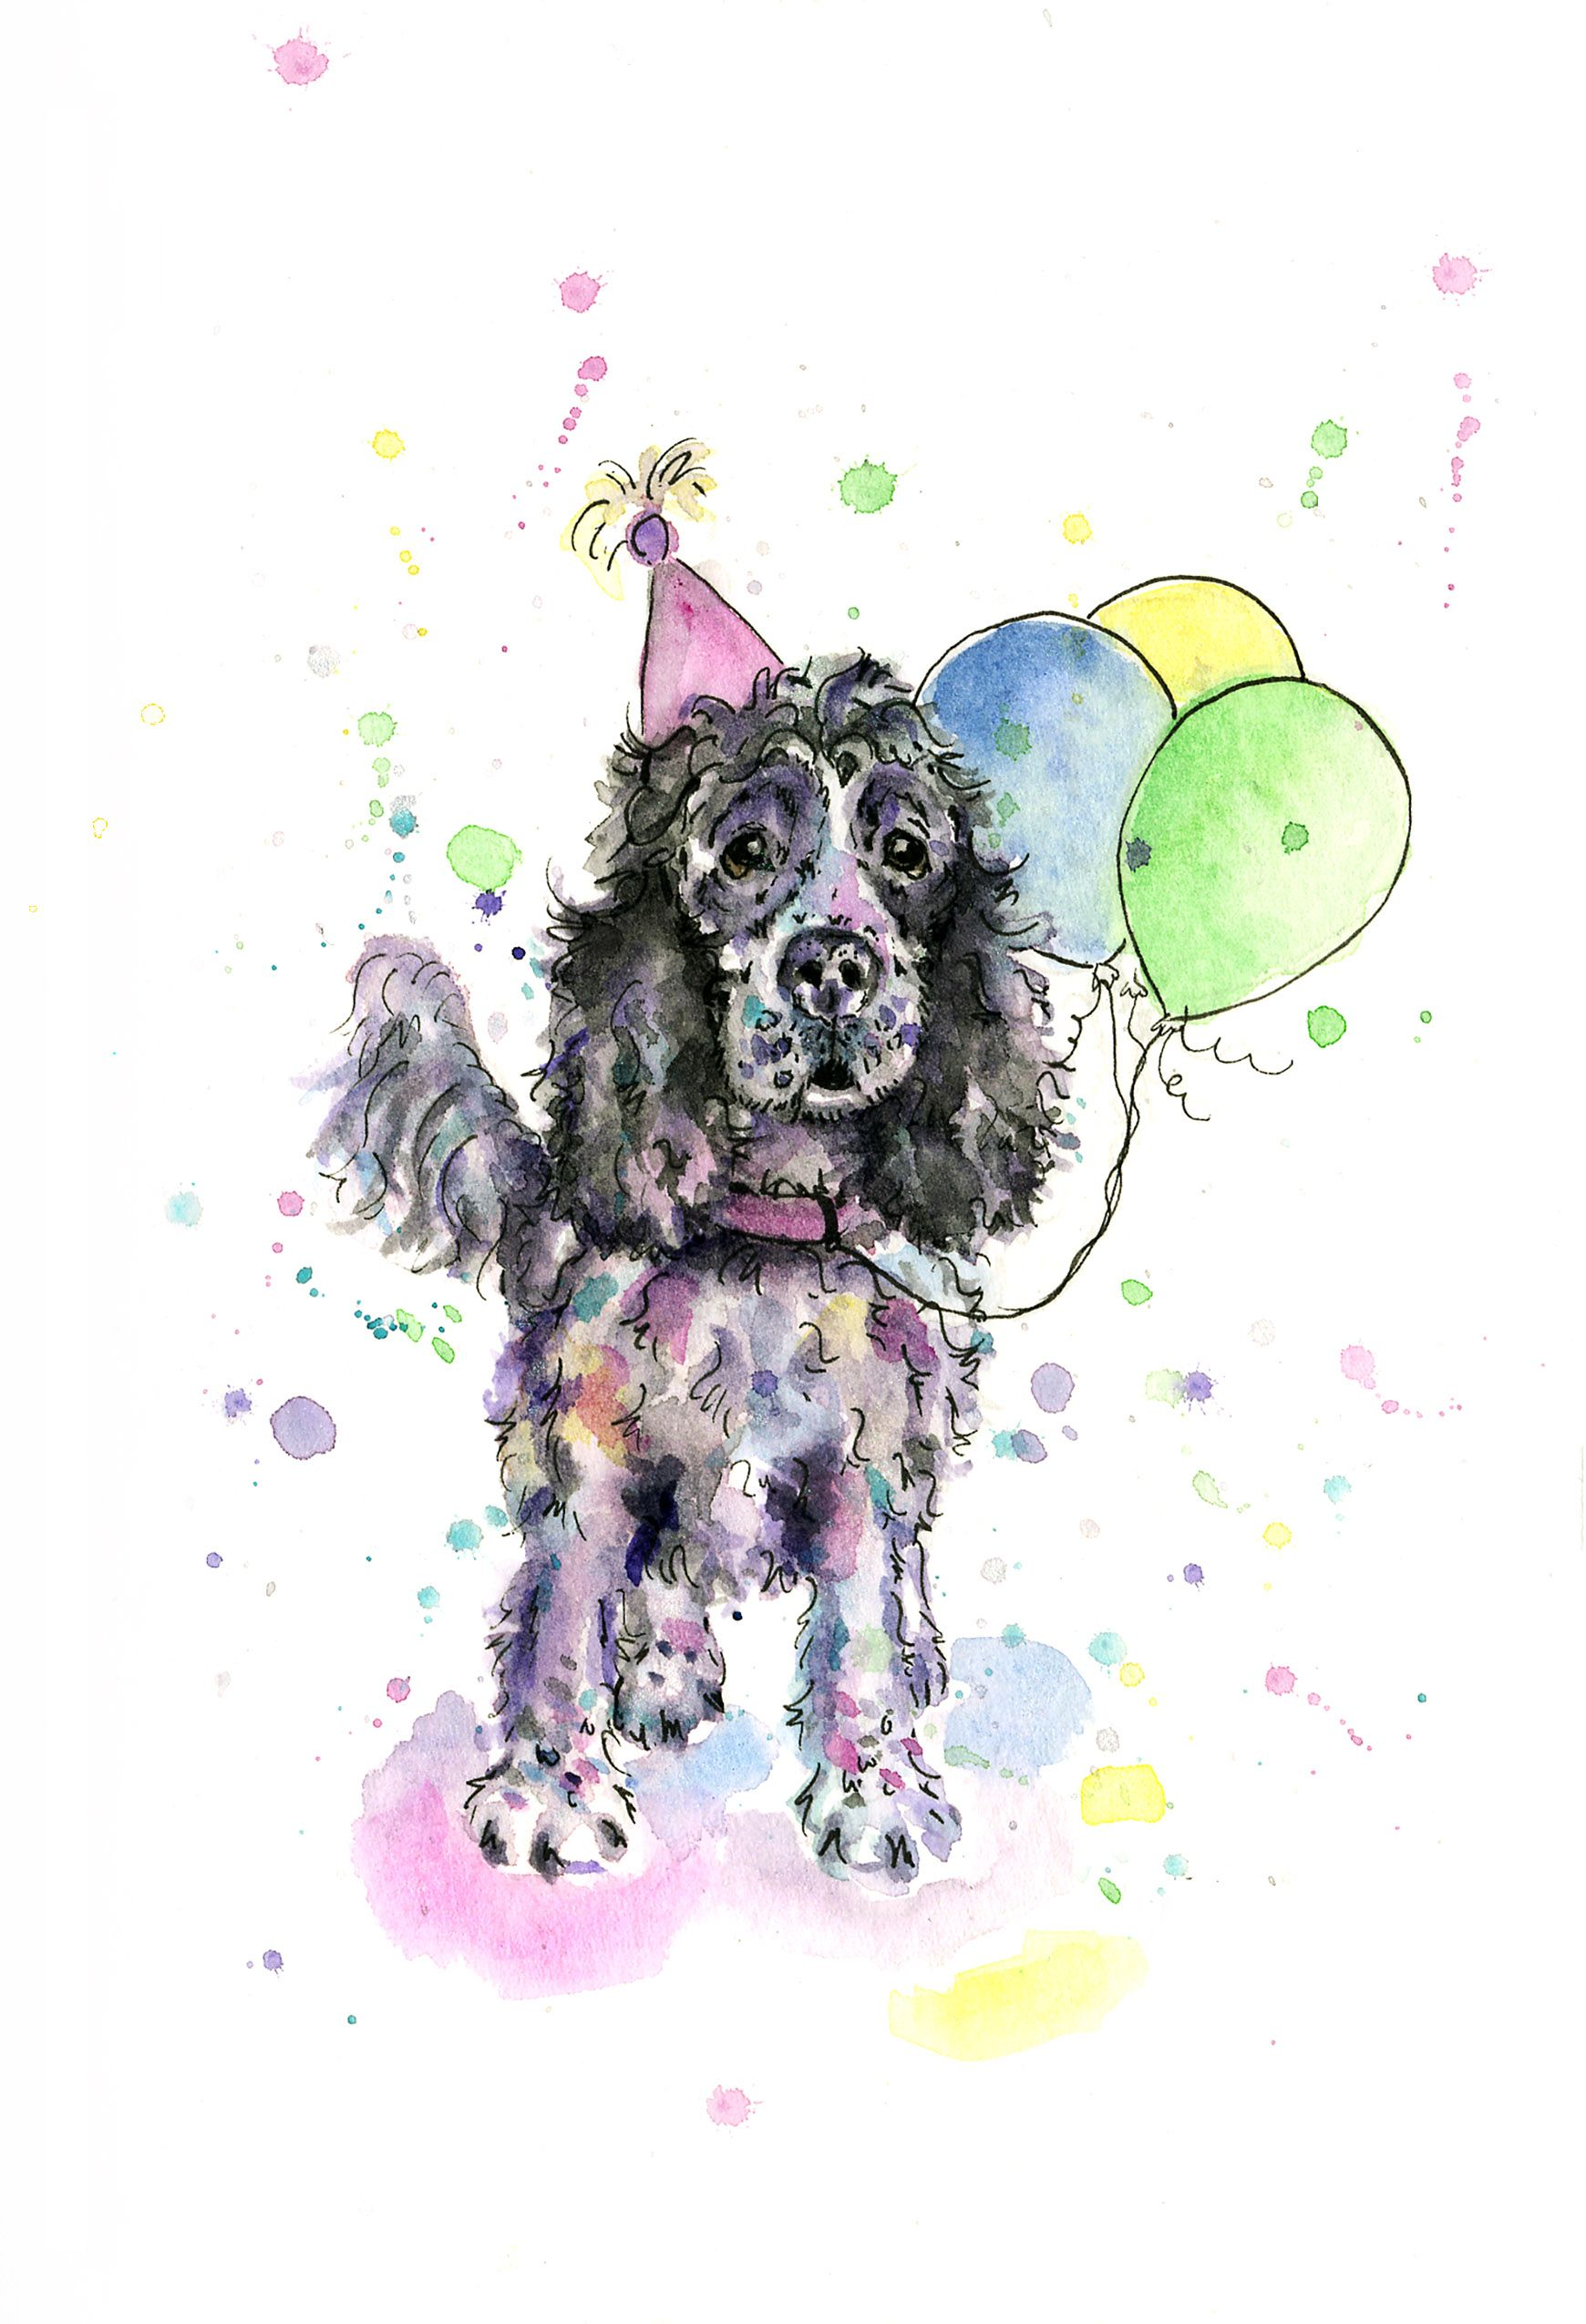 Blue Roan Cocker Spaniel Birthday Card Gift For Owners Colourful Watercolour Painting Birthdaycards Dogbirthdaycards